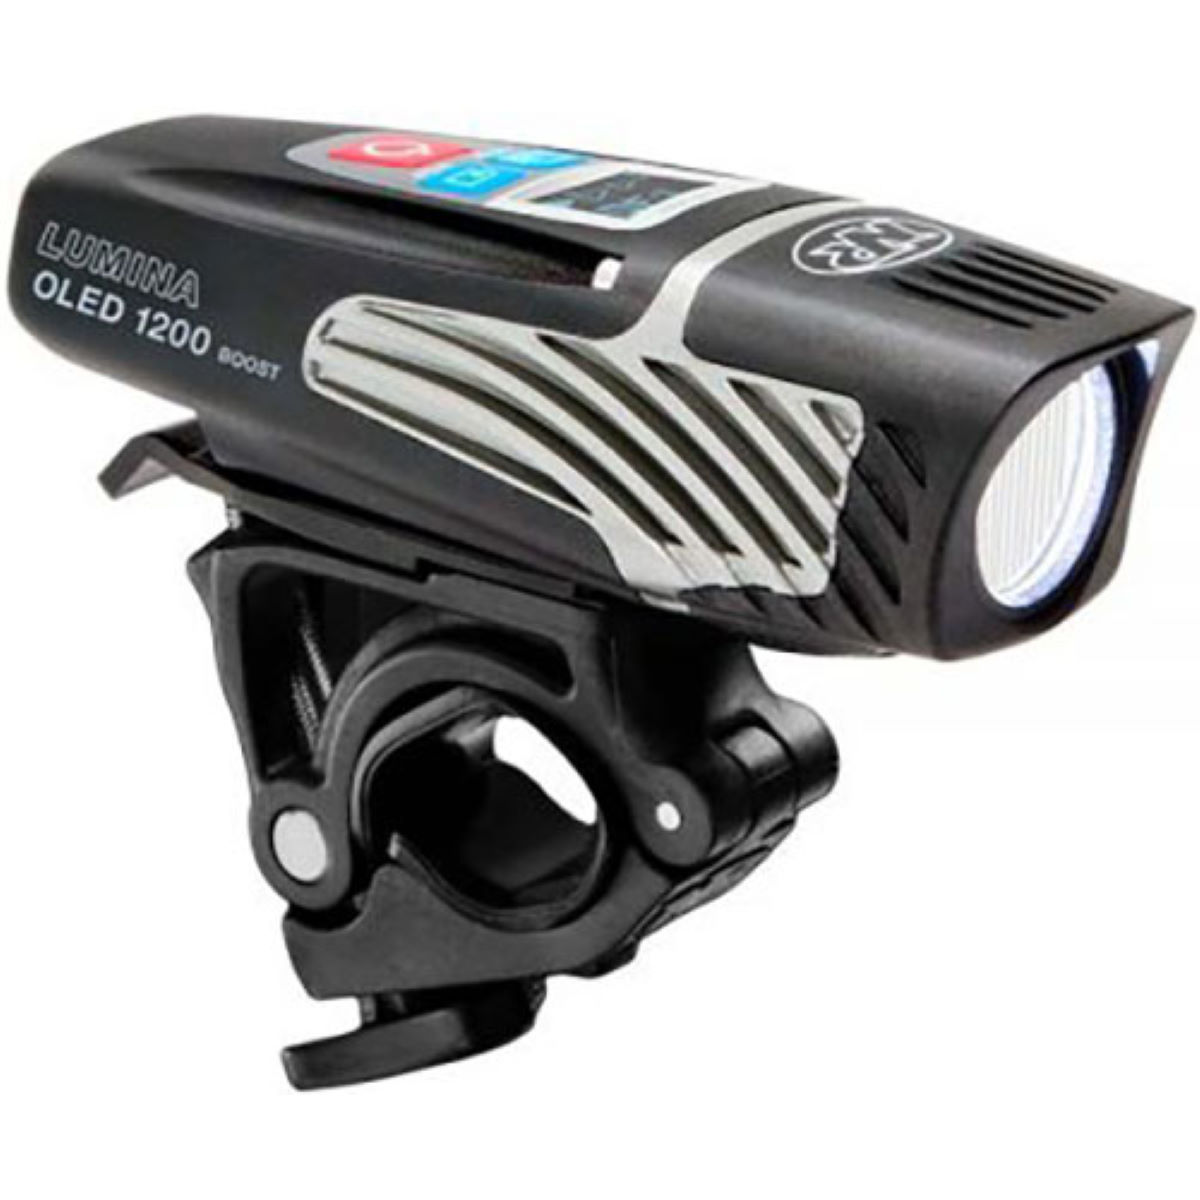 Image of Eclairage avant NiteRider Lumina 1200 Oled Boost - One Size Noir